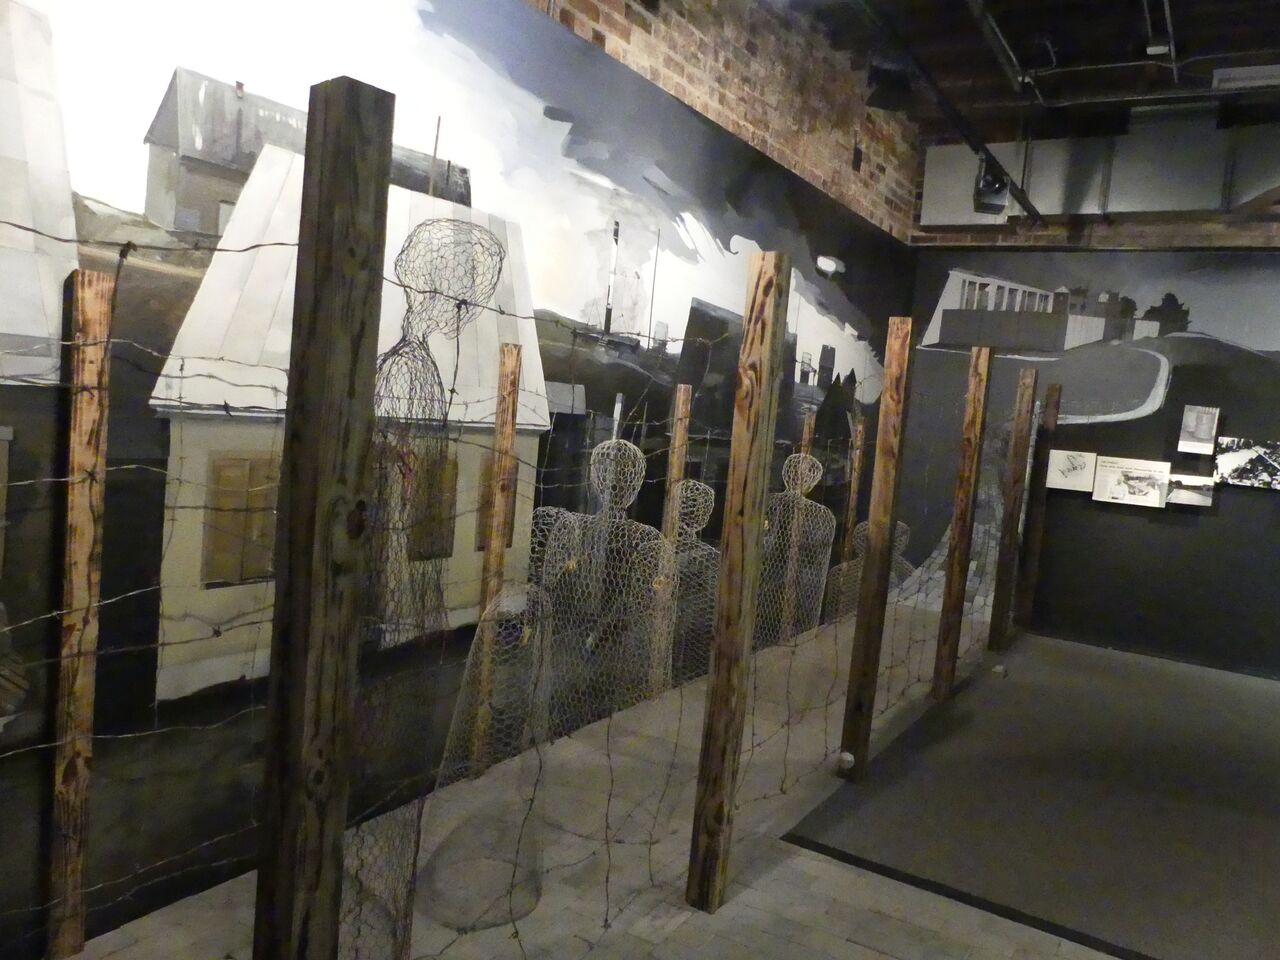 Concentration camp exhibit. Photo: Kathleen Walls